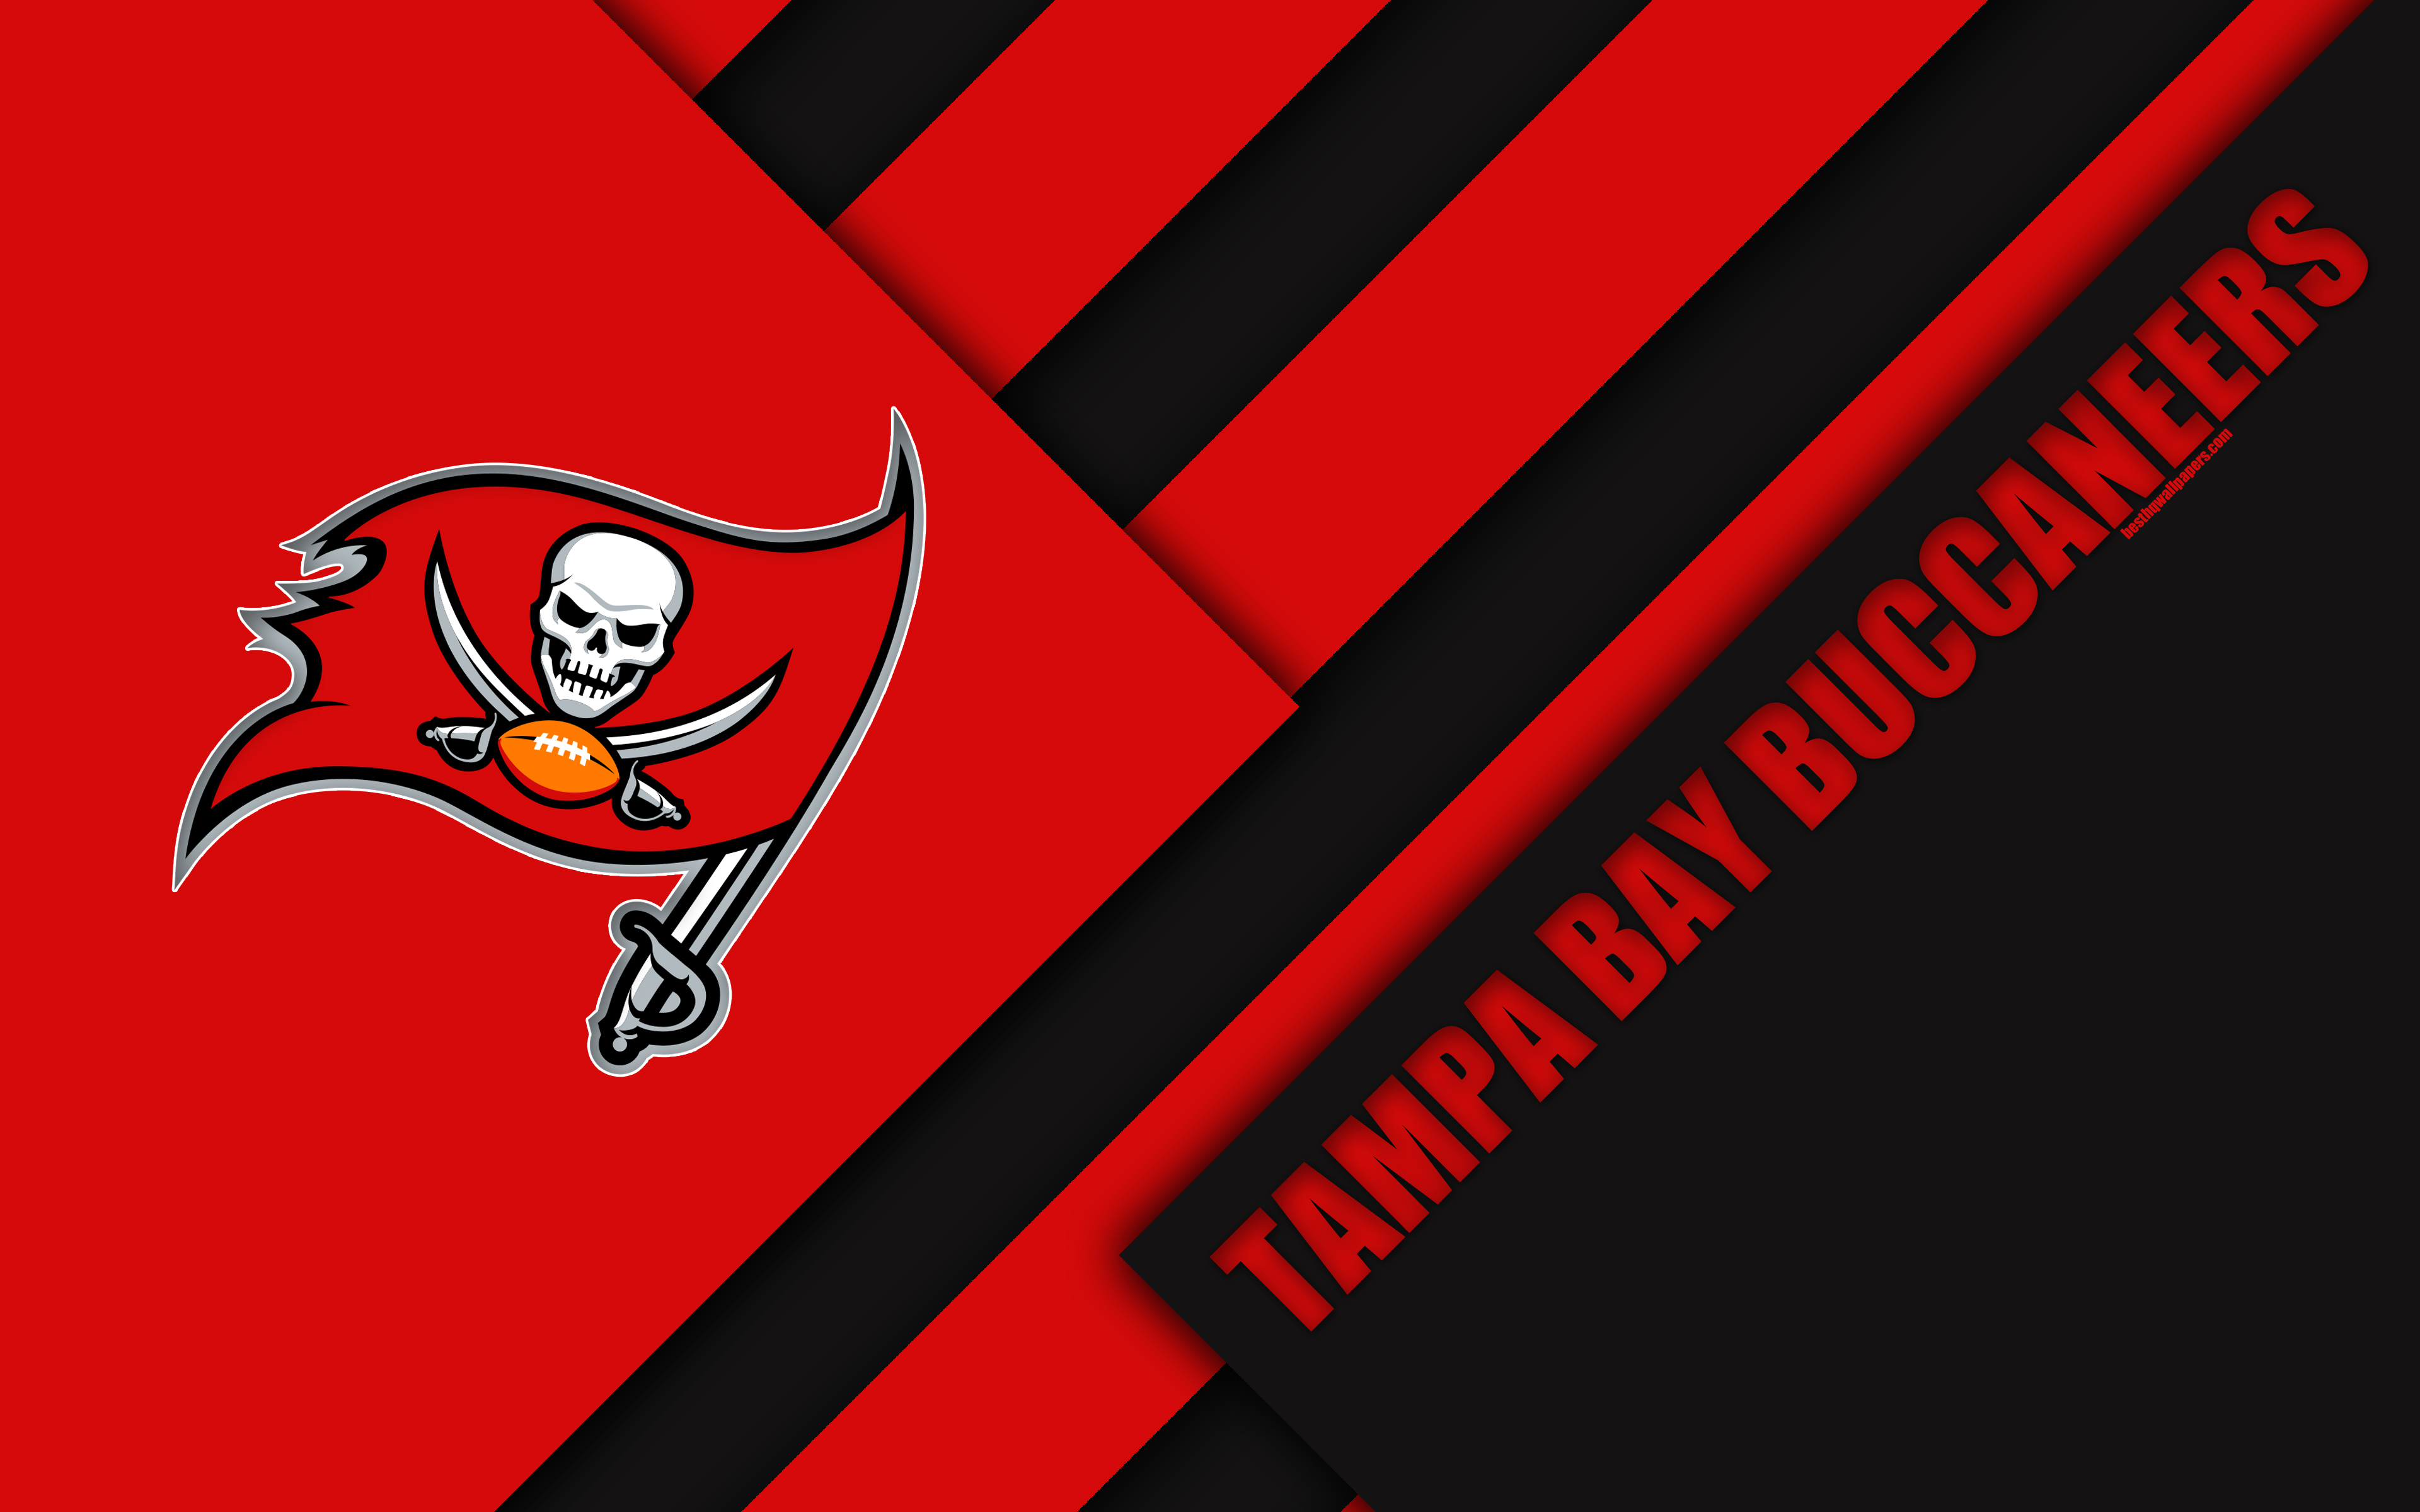 Tampa Bay Buccaneers 4k Nfc South Logo Nfl Red Desktop Tampa Bay Buccaneers 3273934 Hd Wallpaper Backgrounds Download